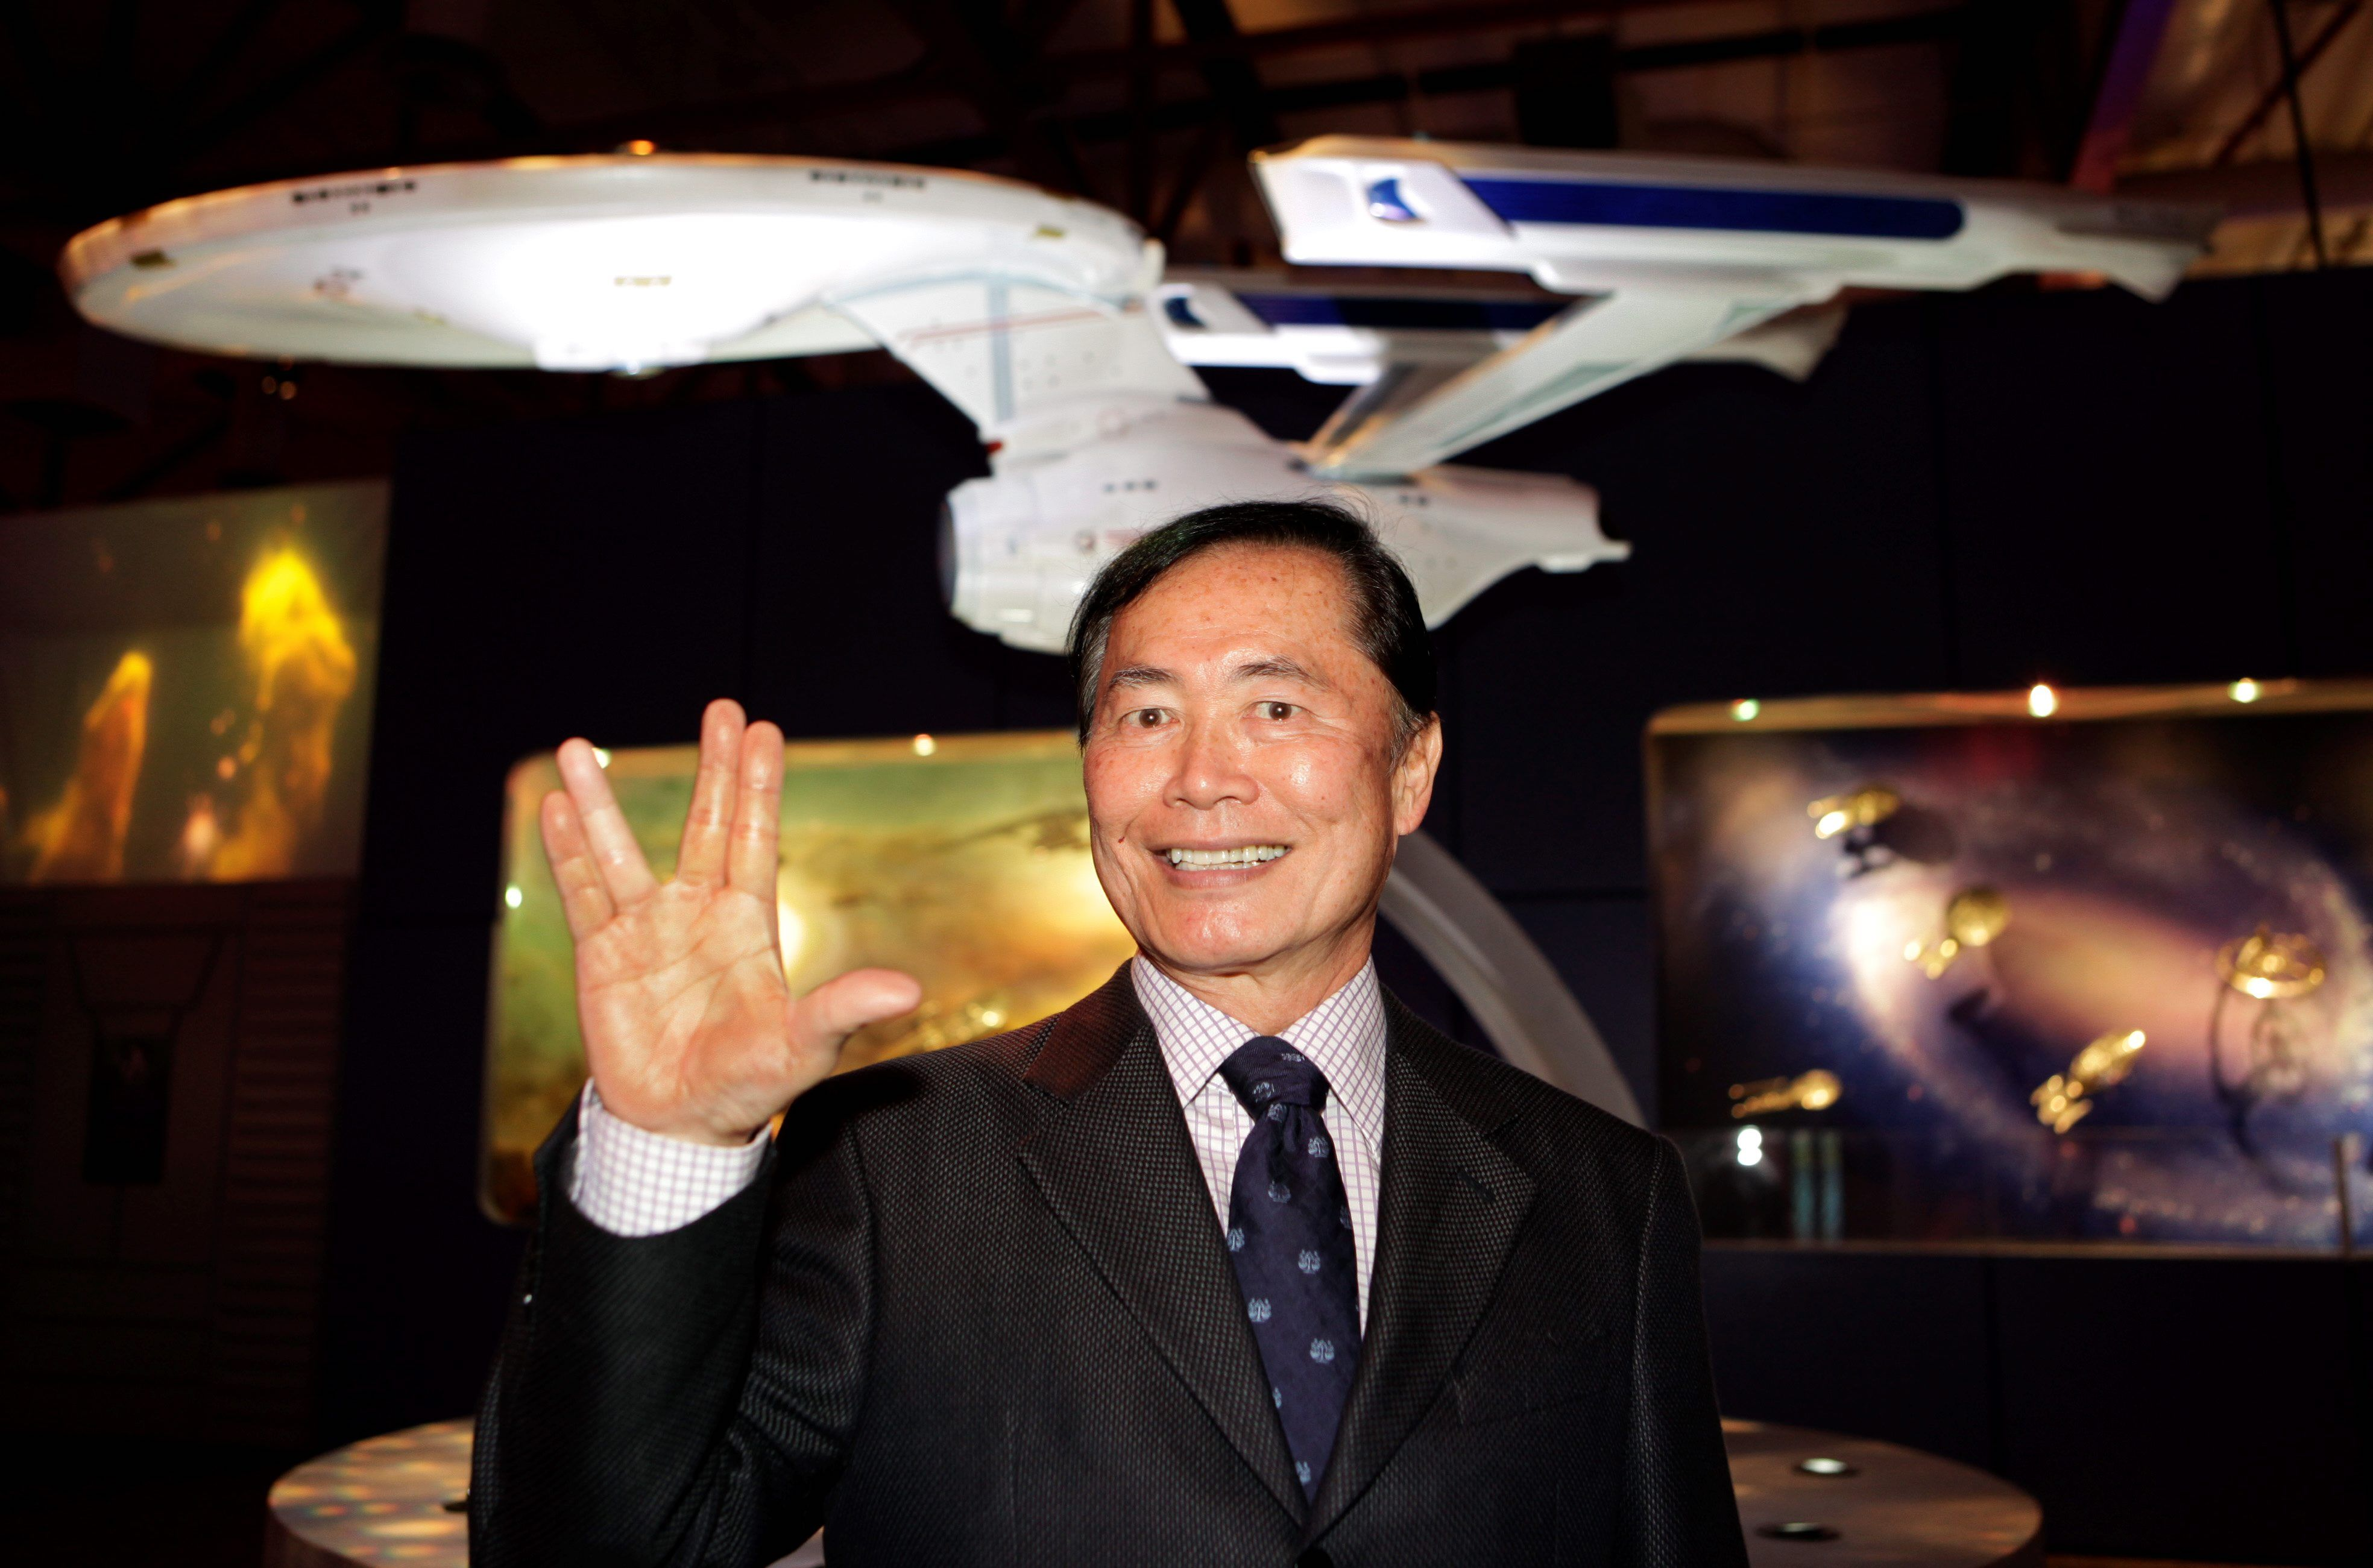 George Takei says Trump has phasers set to 'slavery' for border control